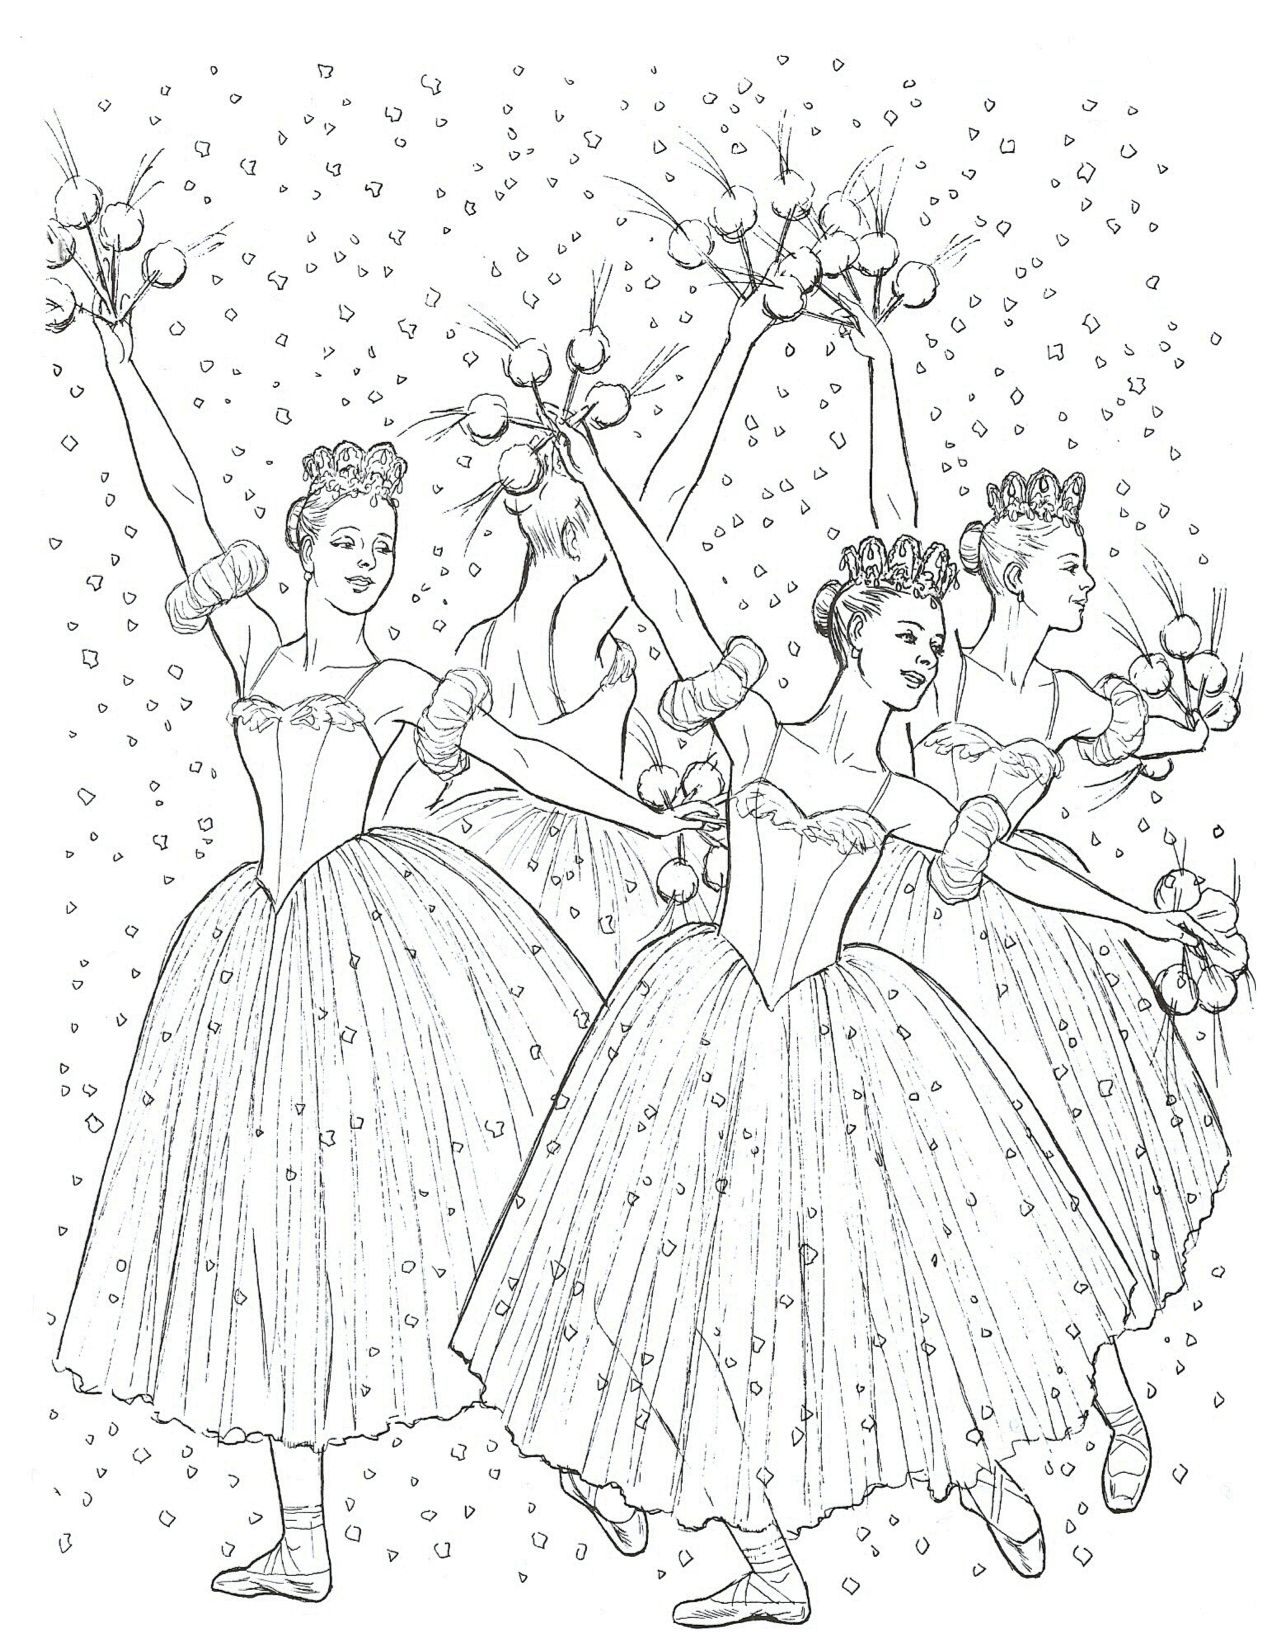 Nutcracker Coloring Page | Christmas coloring pages